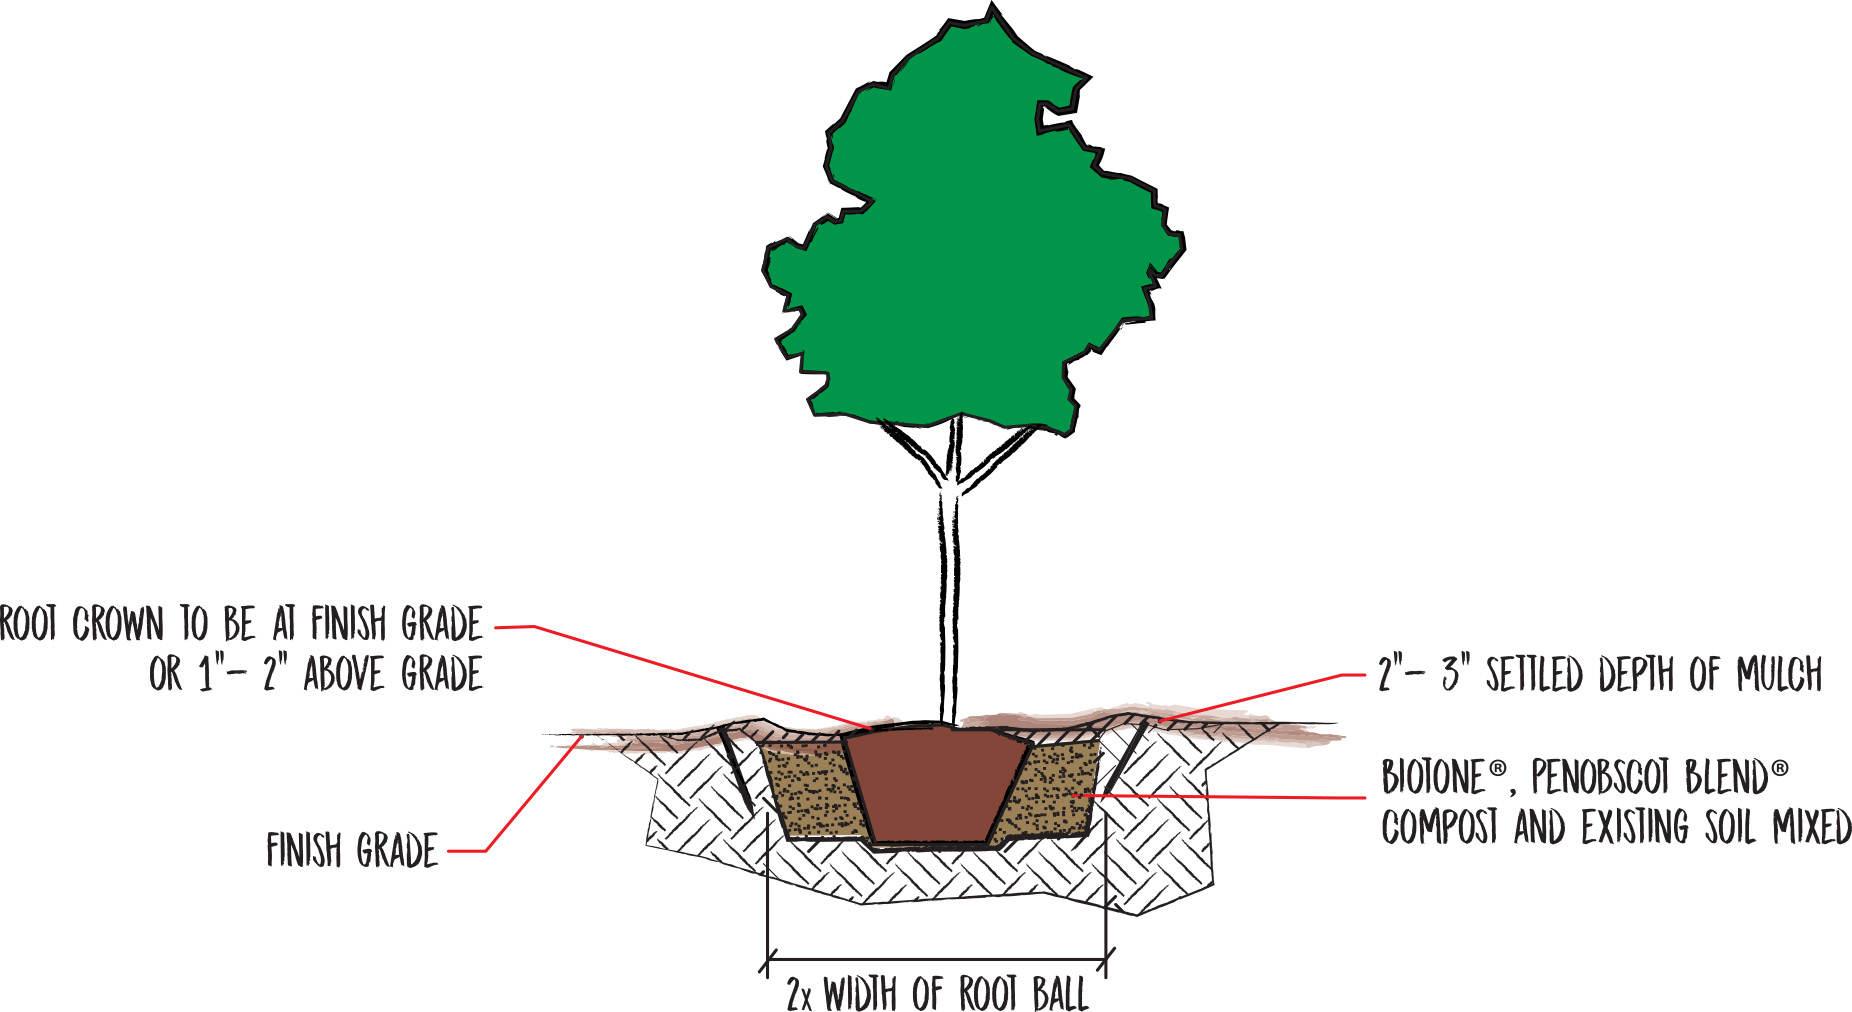 TypicalTreePlanting_Updated2018